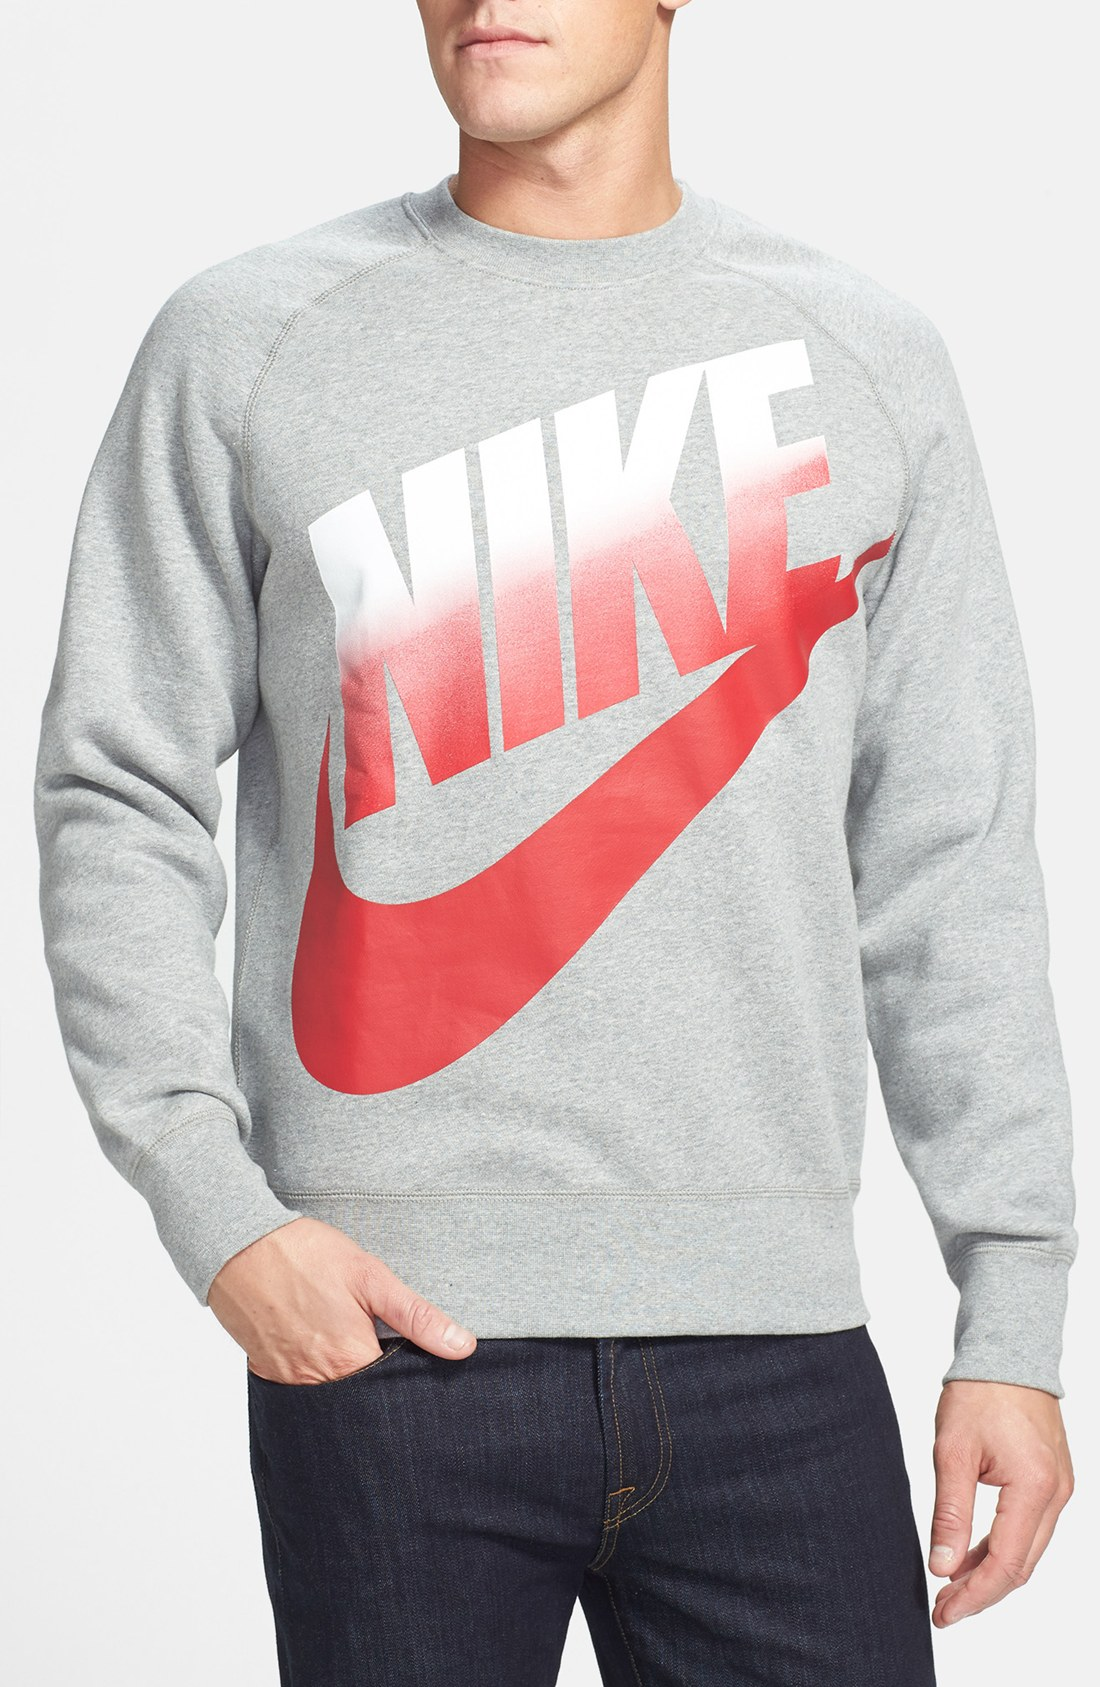 Nike Aw77 Crewneck Sweatshirt in Gray for Men | Lyst